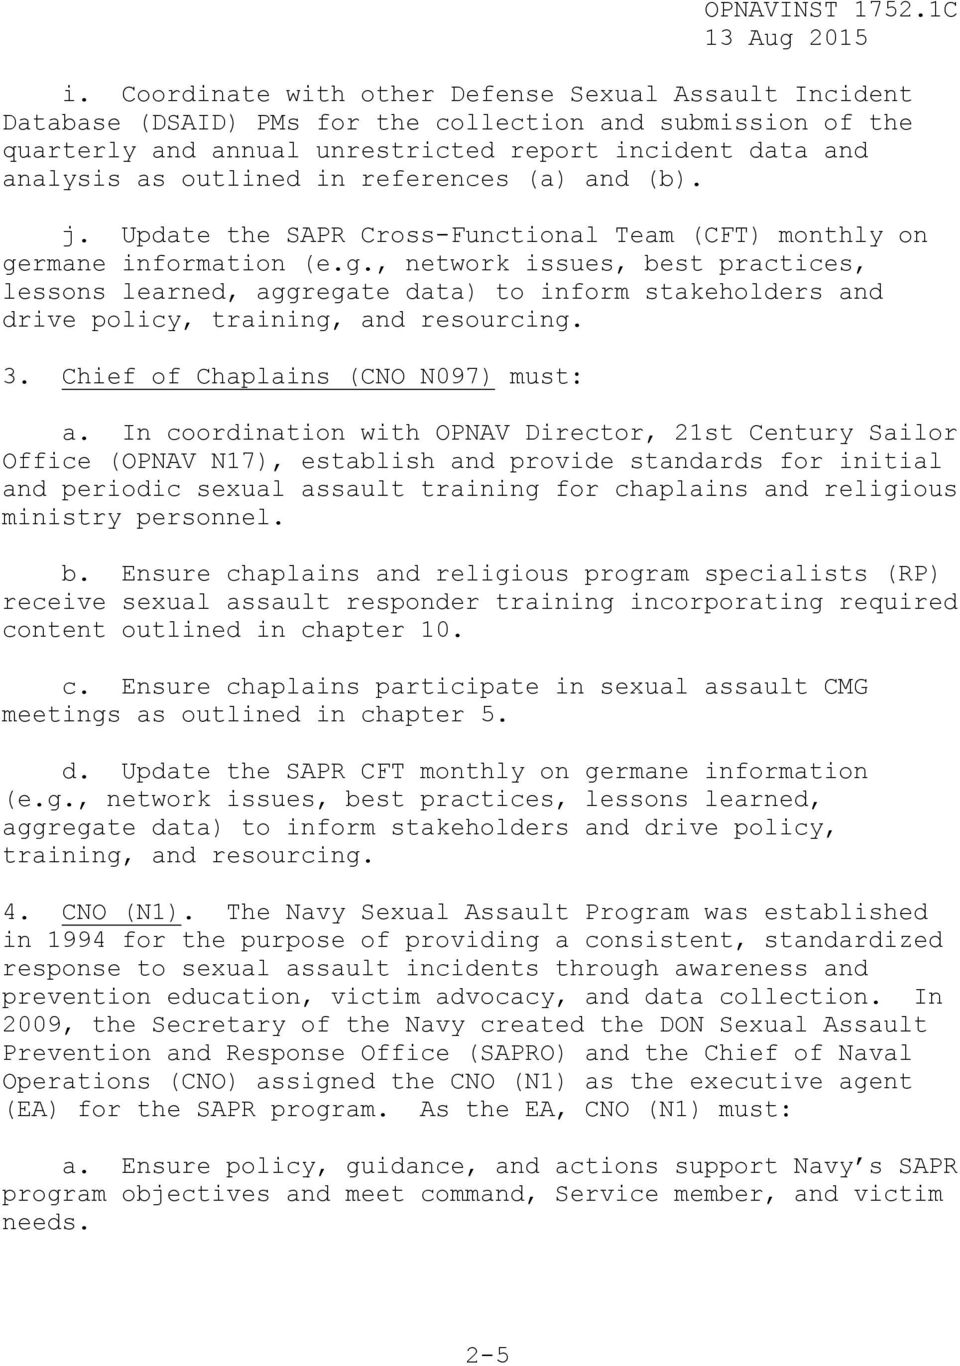 opnavinst c 13 aug 2015 navy sexual assault prevention and response